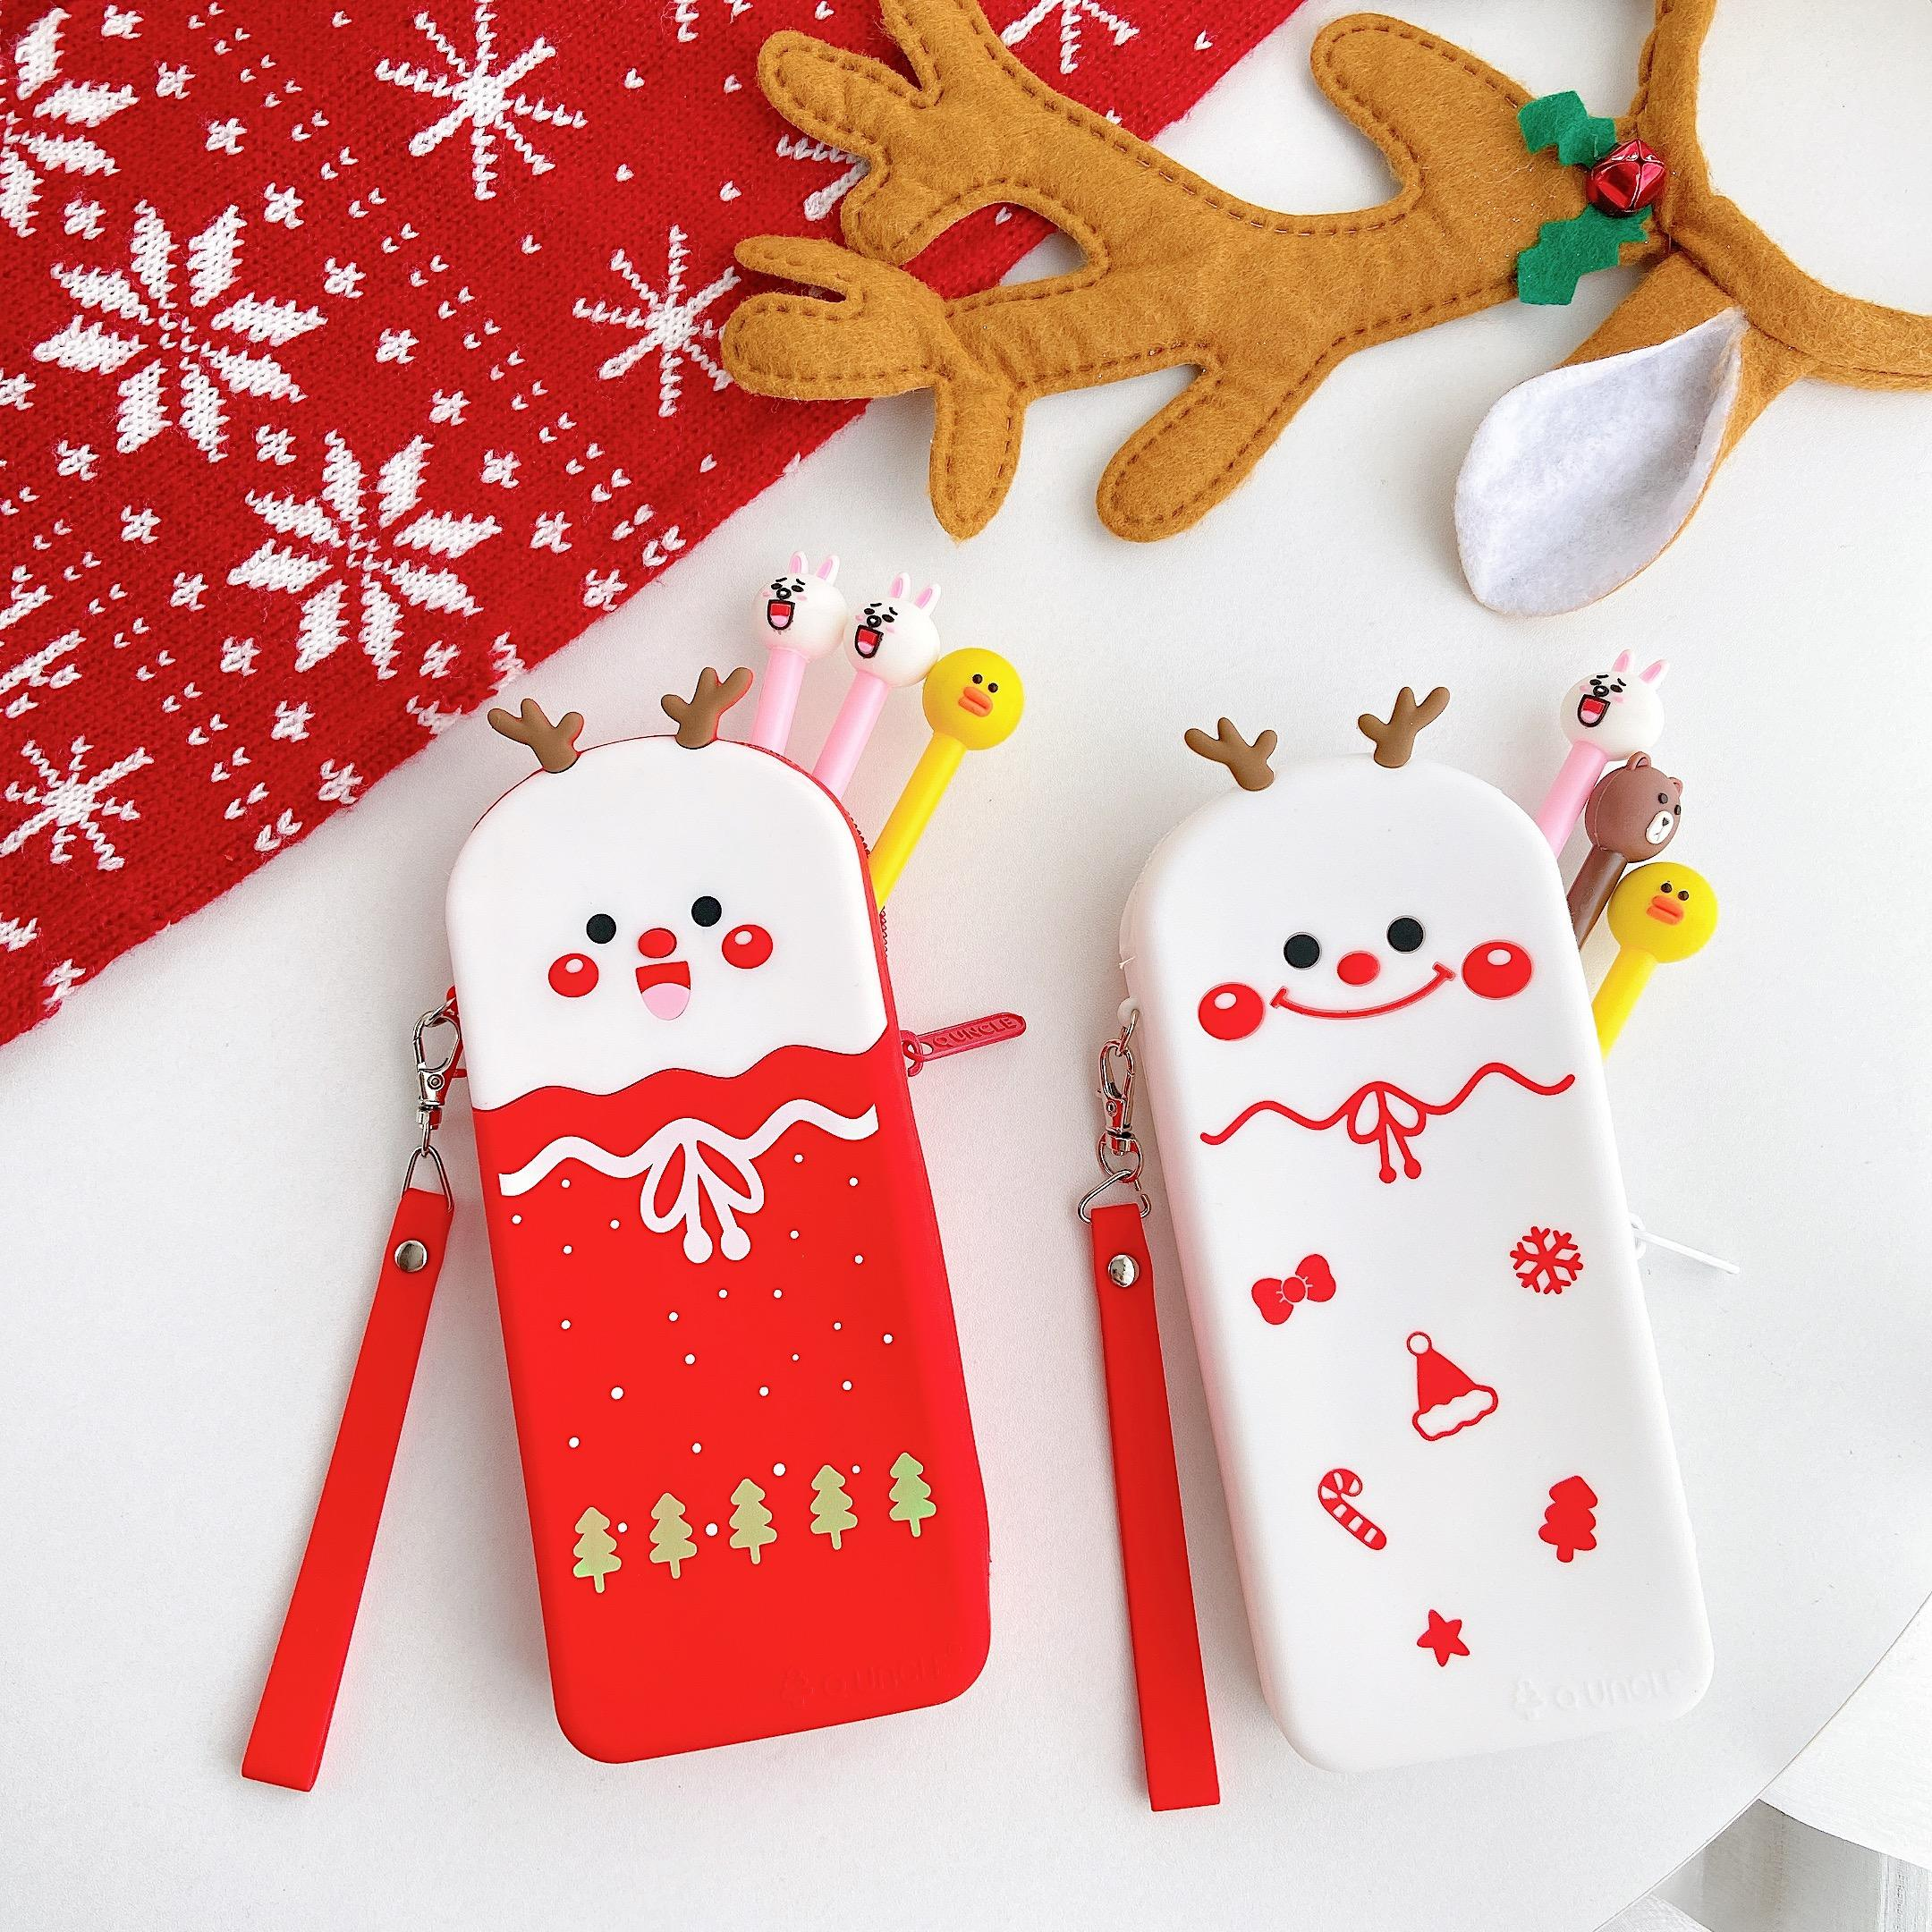 Top Quality Australia 2018 Trendy Christmas Gifts Kids New Cute School Cartoon Pencil Case